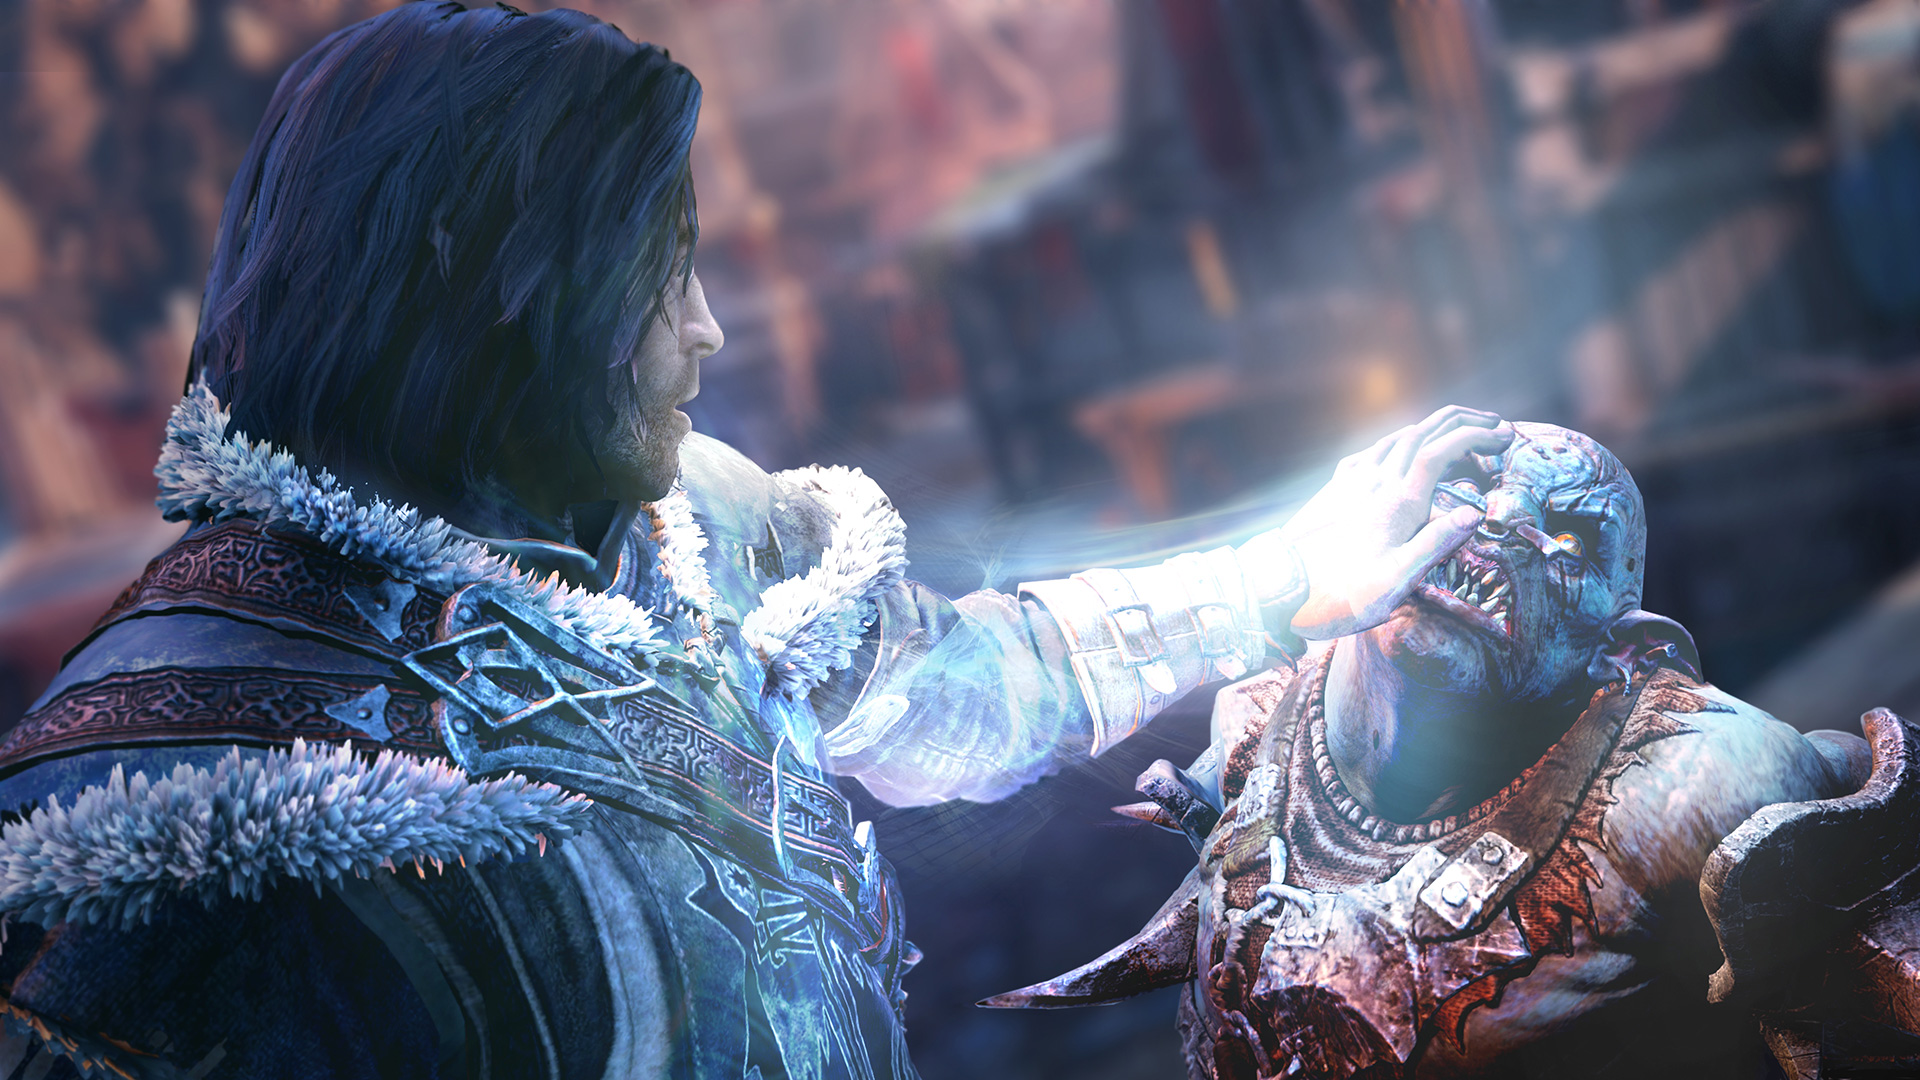 Middle-earth: Shadow of Mordor was updated so completionists can unlock online achievements and trophies screenshot